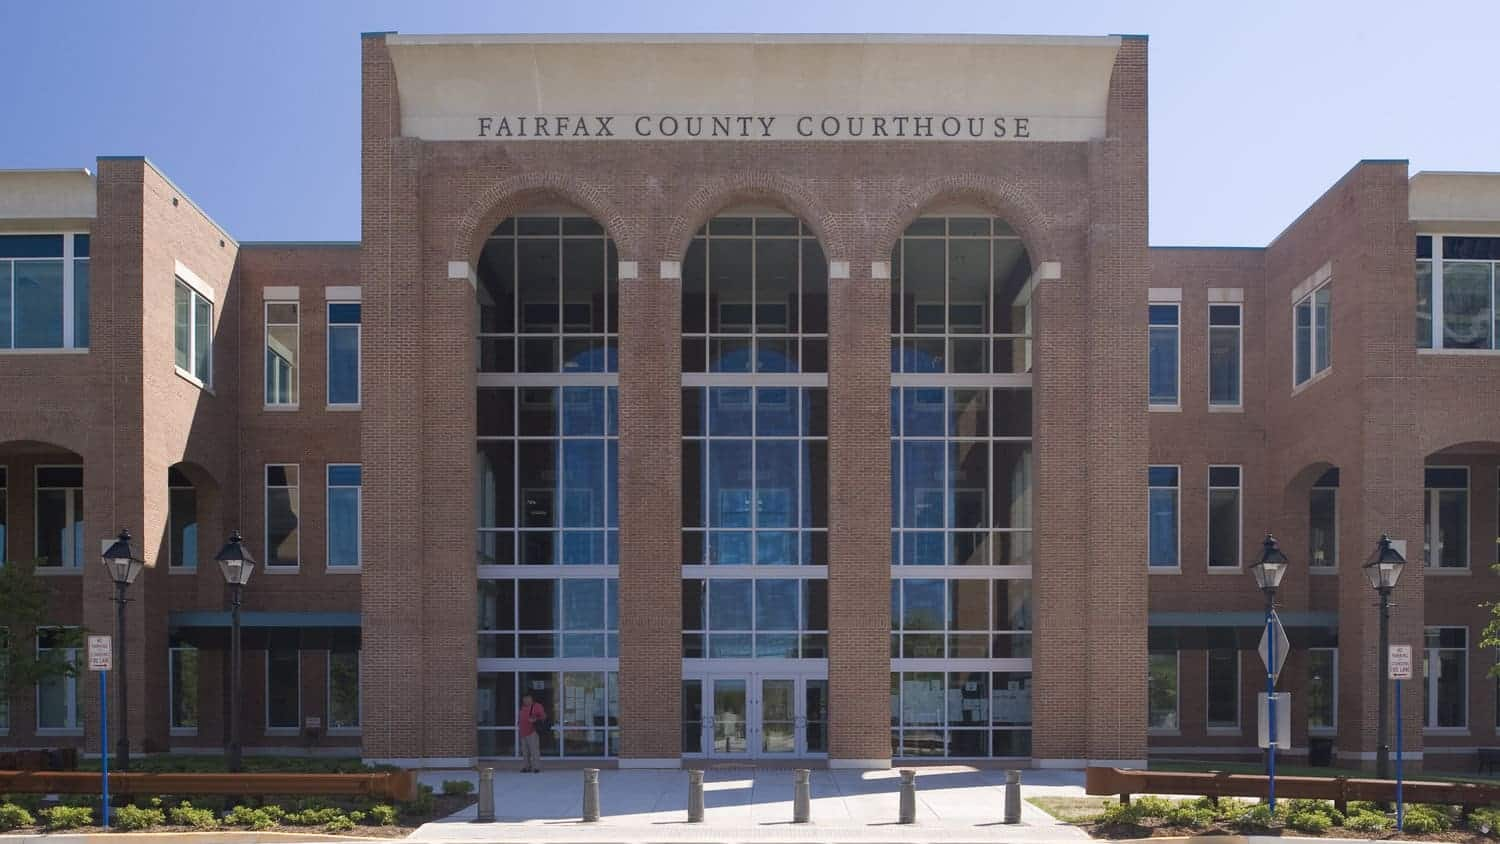 Fairfax County Courthouse